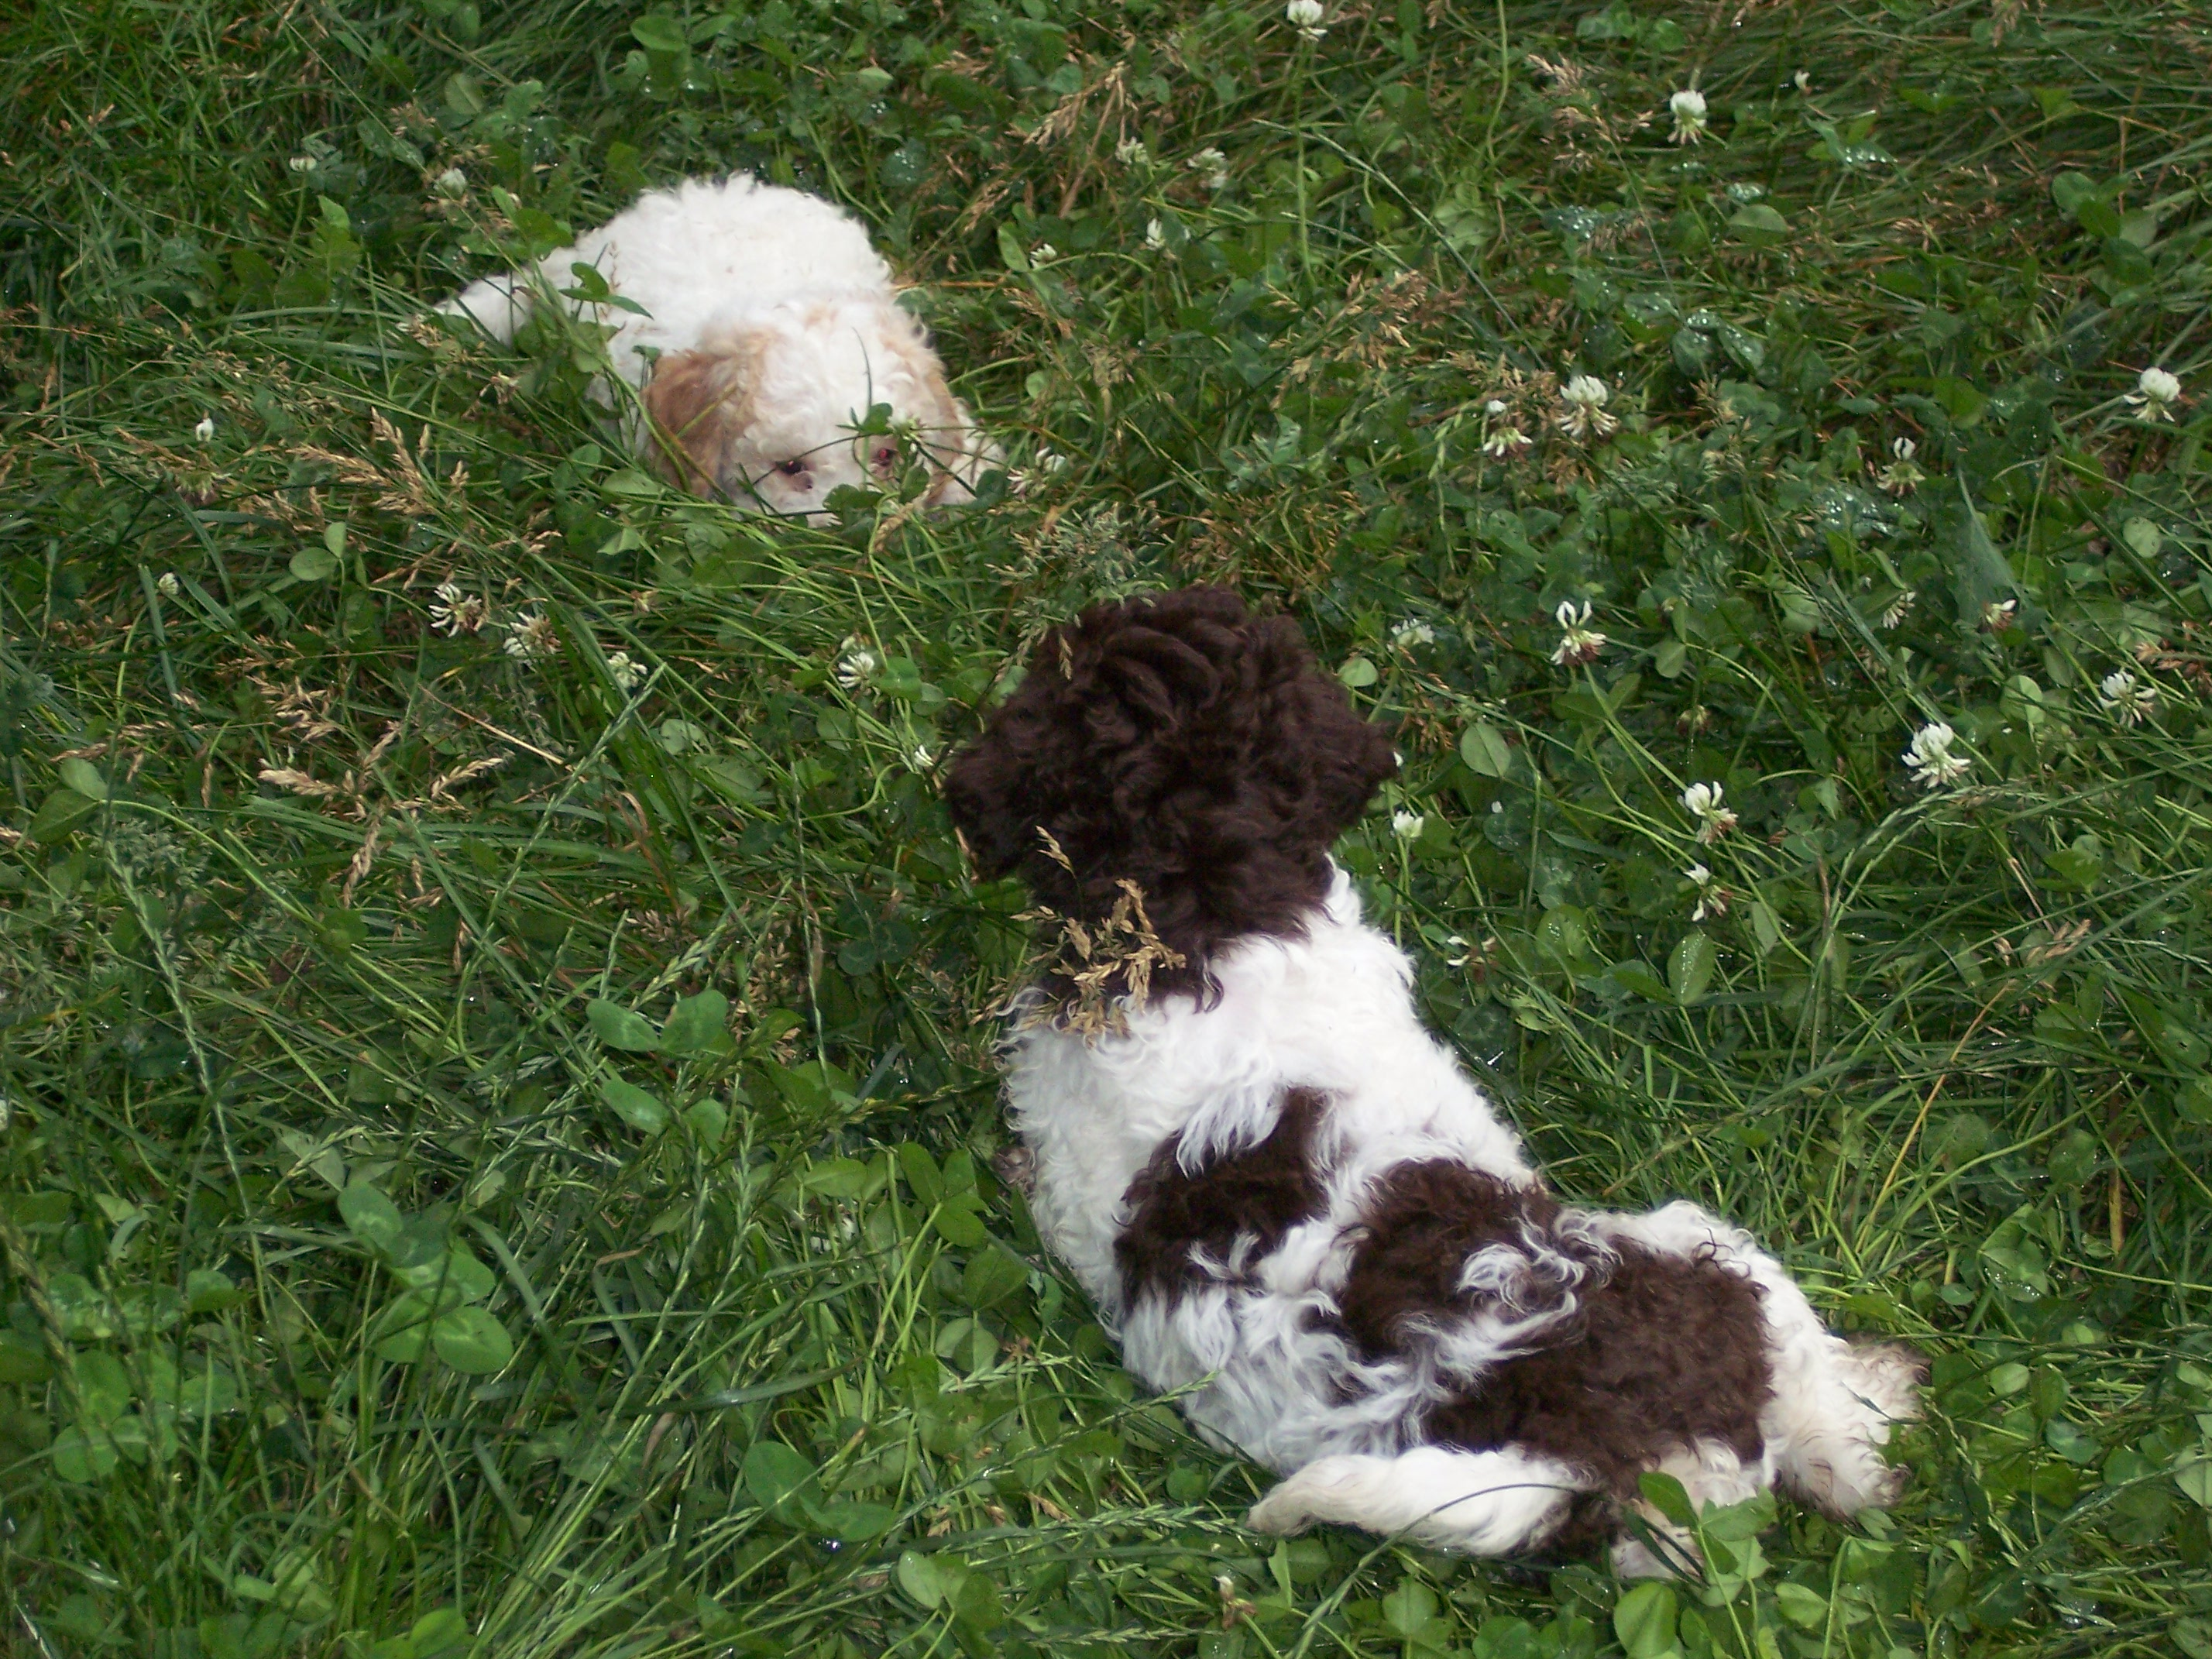 Lagotto Romagnolo puppies in the grass wallpaper